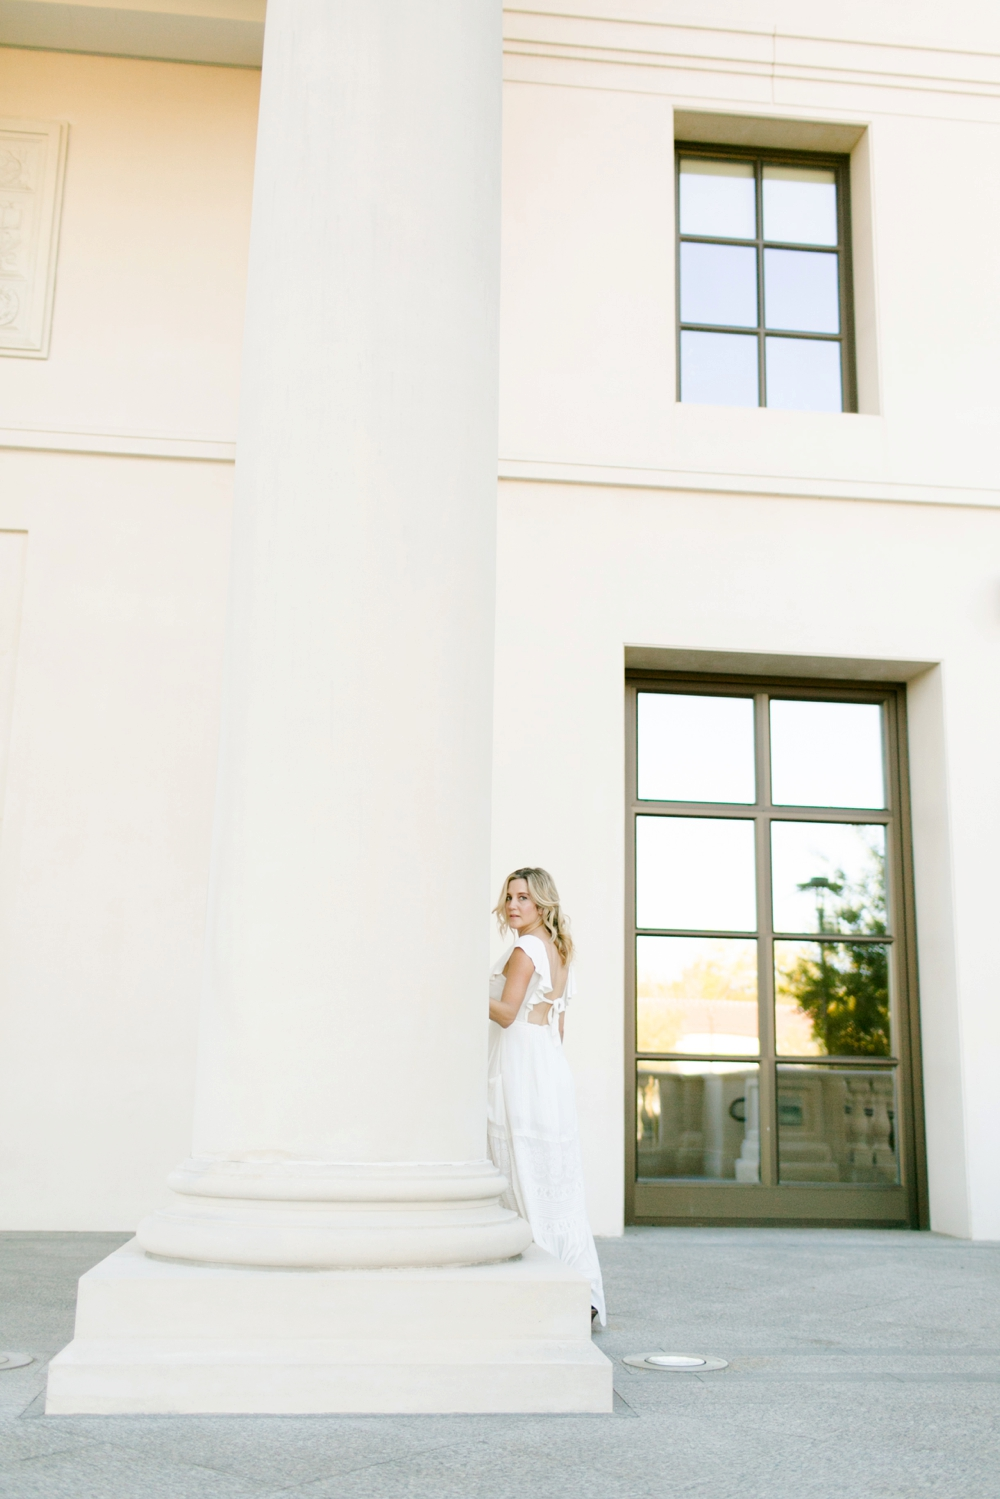 61pasadena-charm-huntington-library-pasadena-editorial-photography